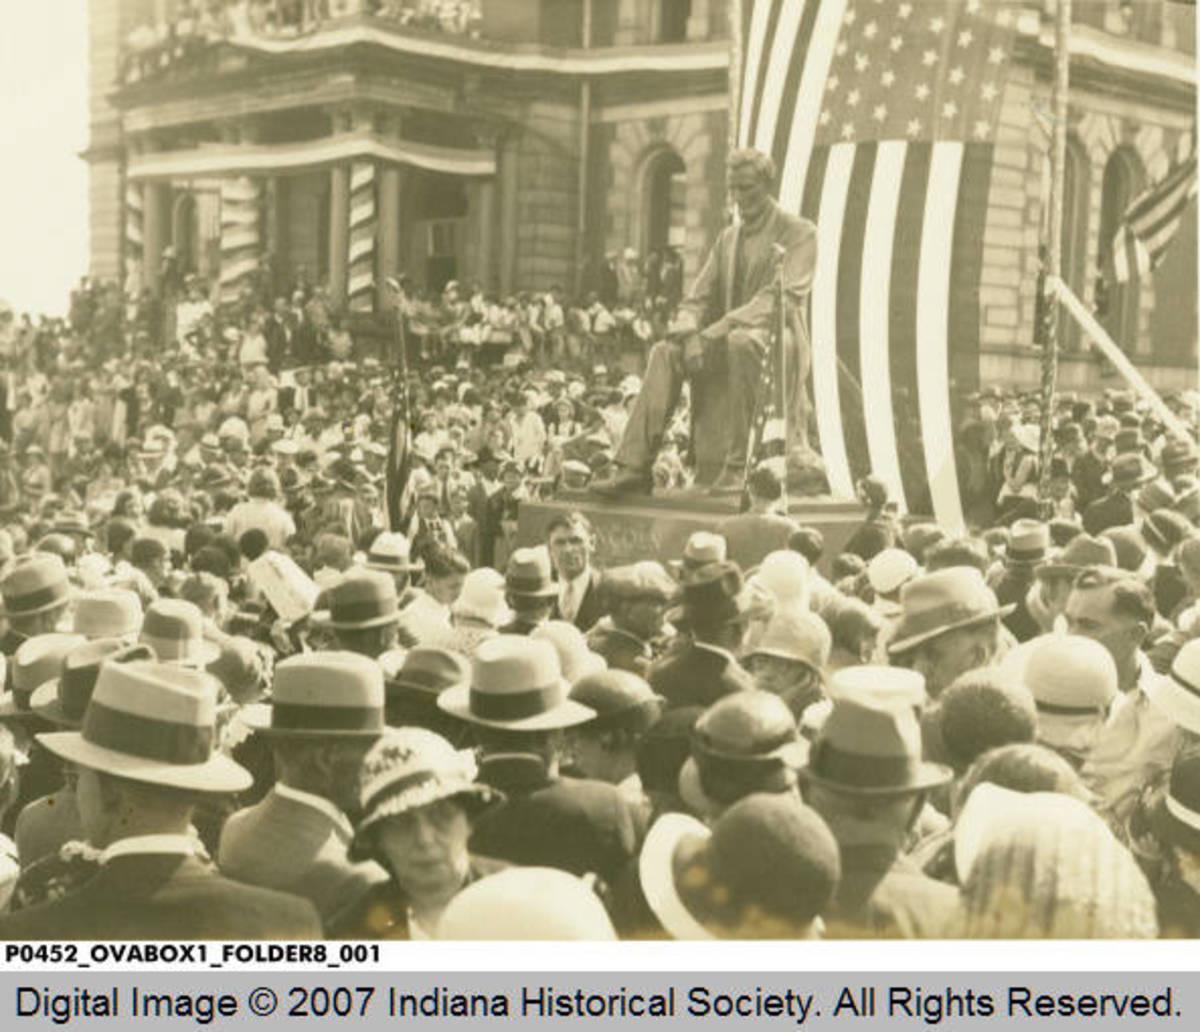 Dedication of Abe Lincoln Statue on Memorial Day, 1932